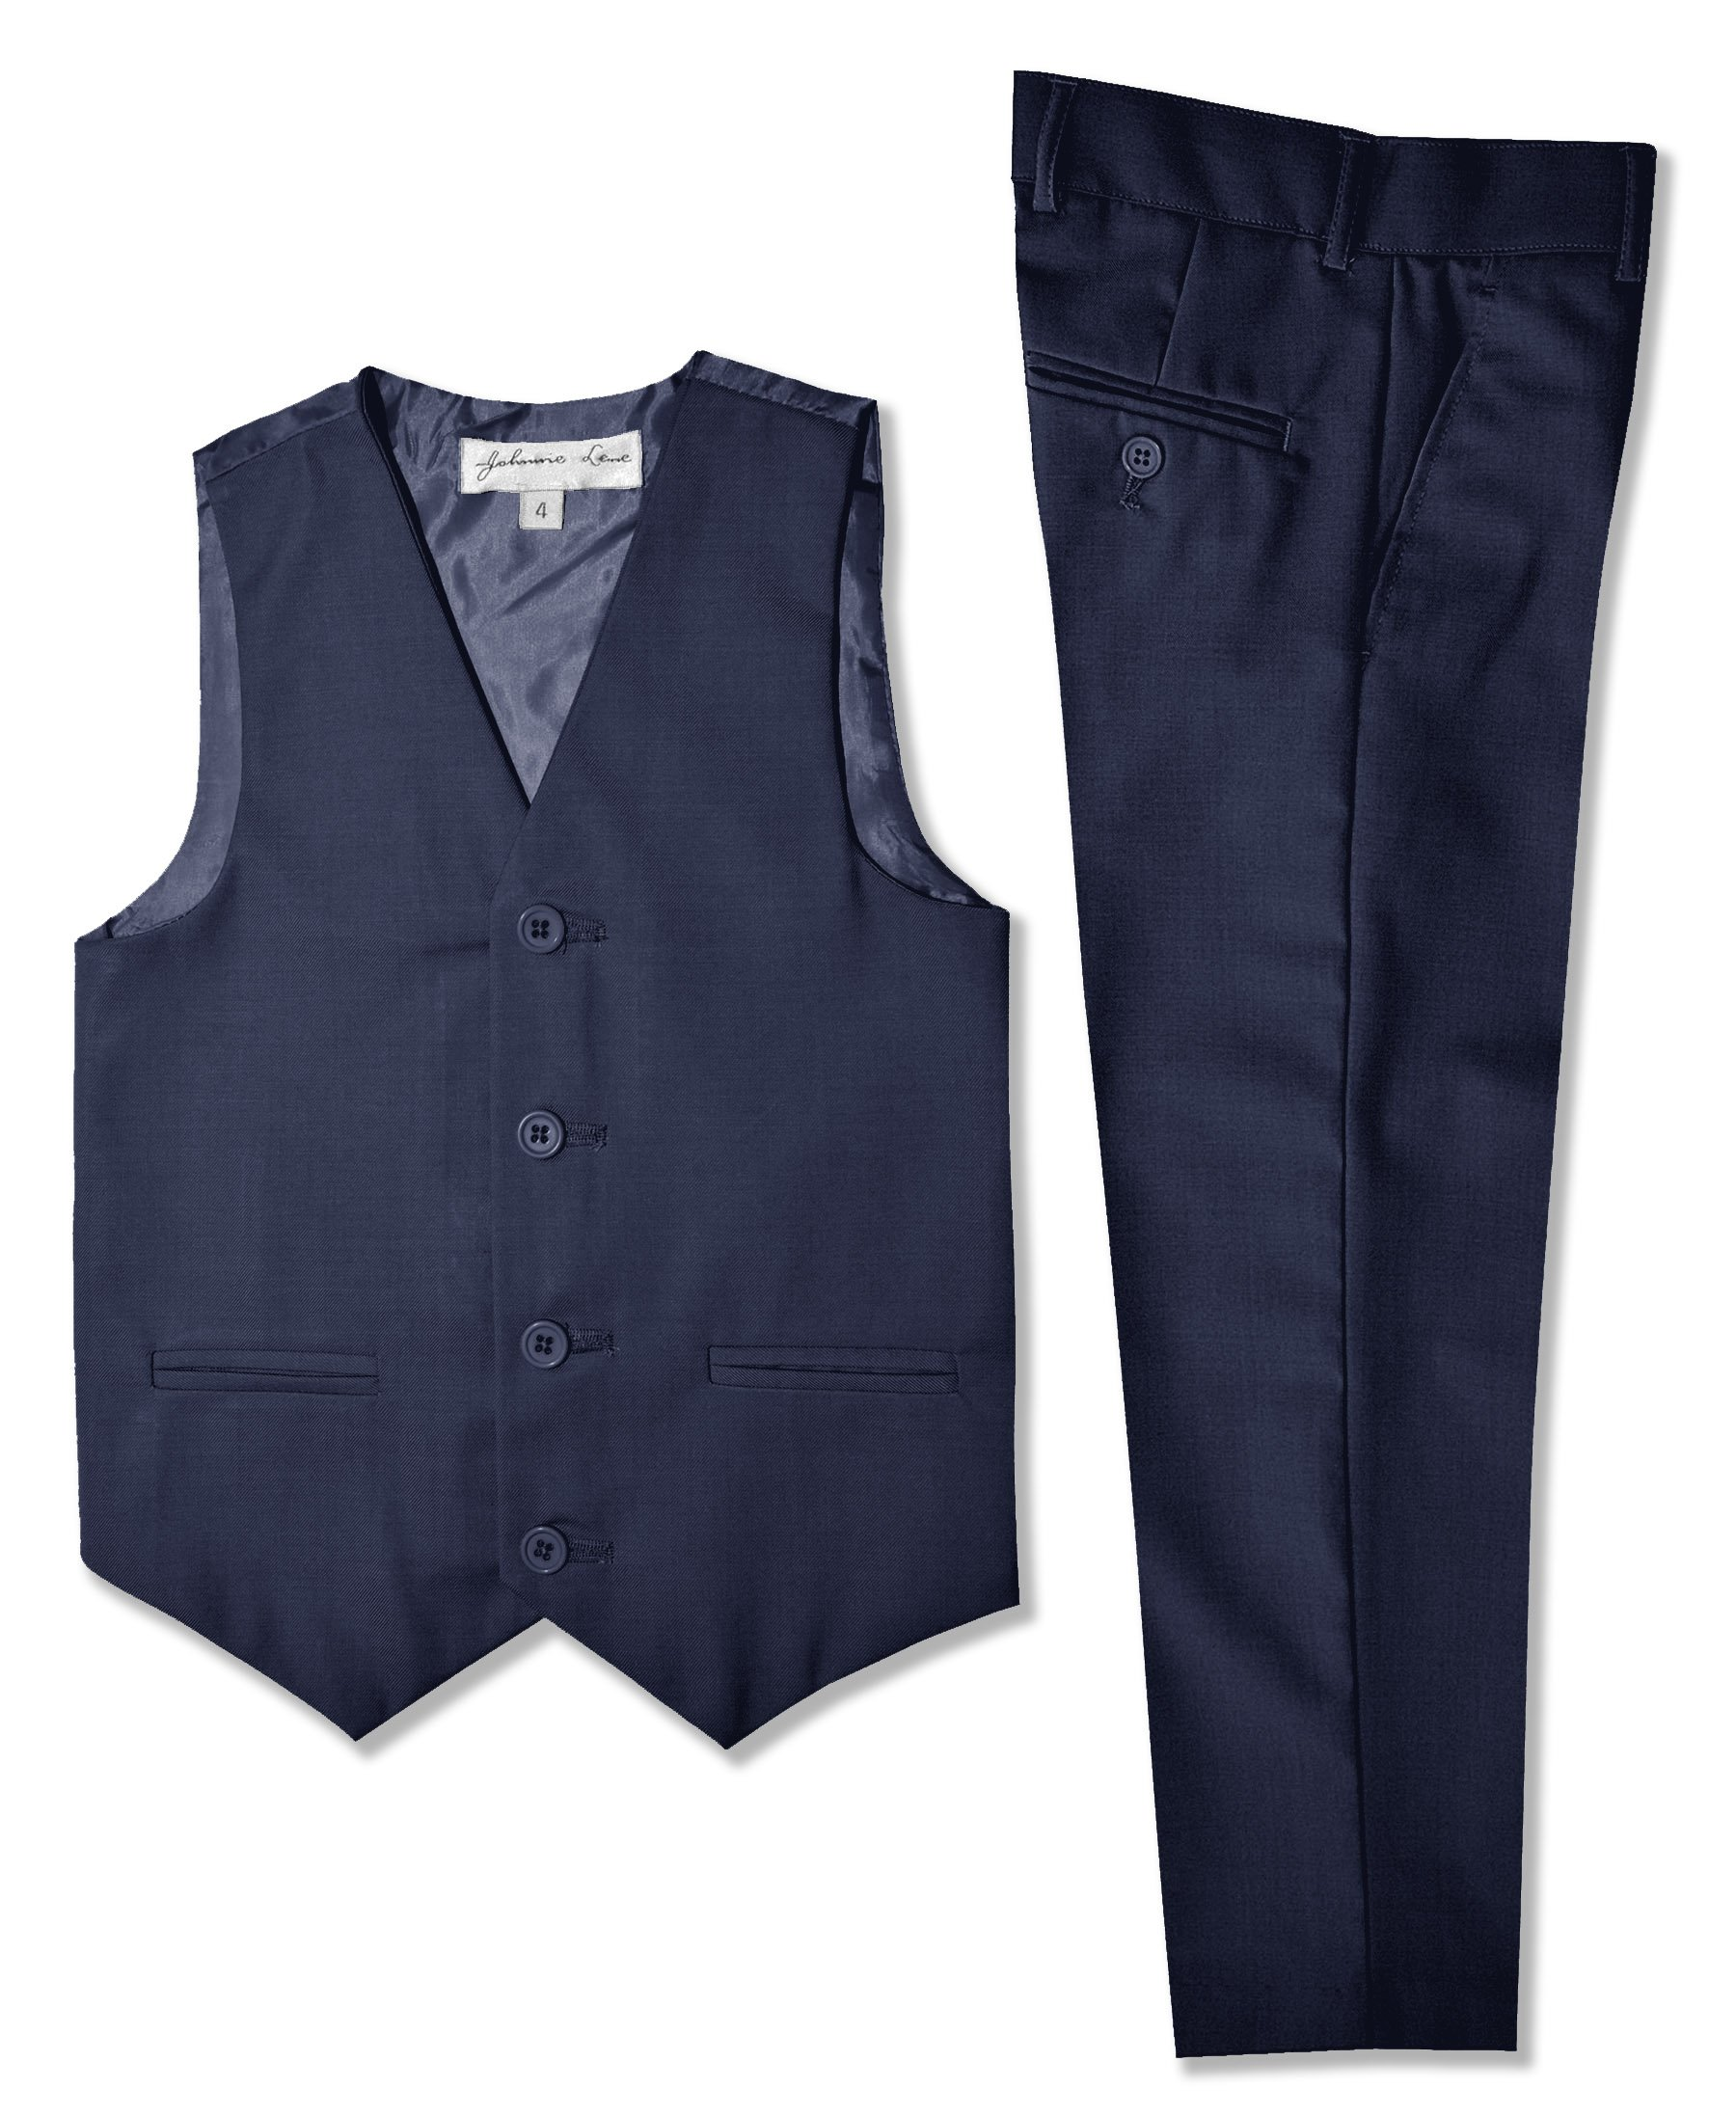 Boys Formal Vest and Pants Set #JL42 (12, Navy)